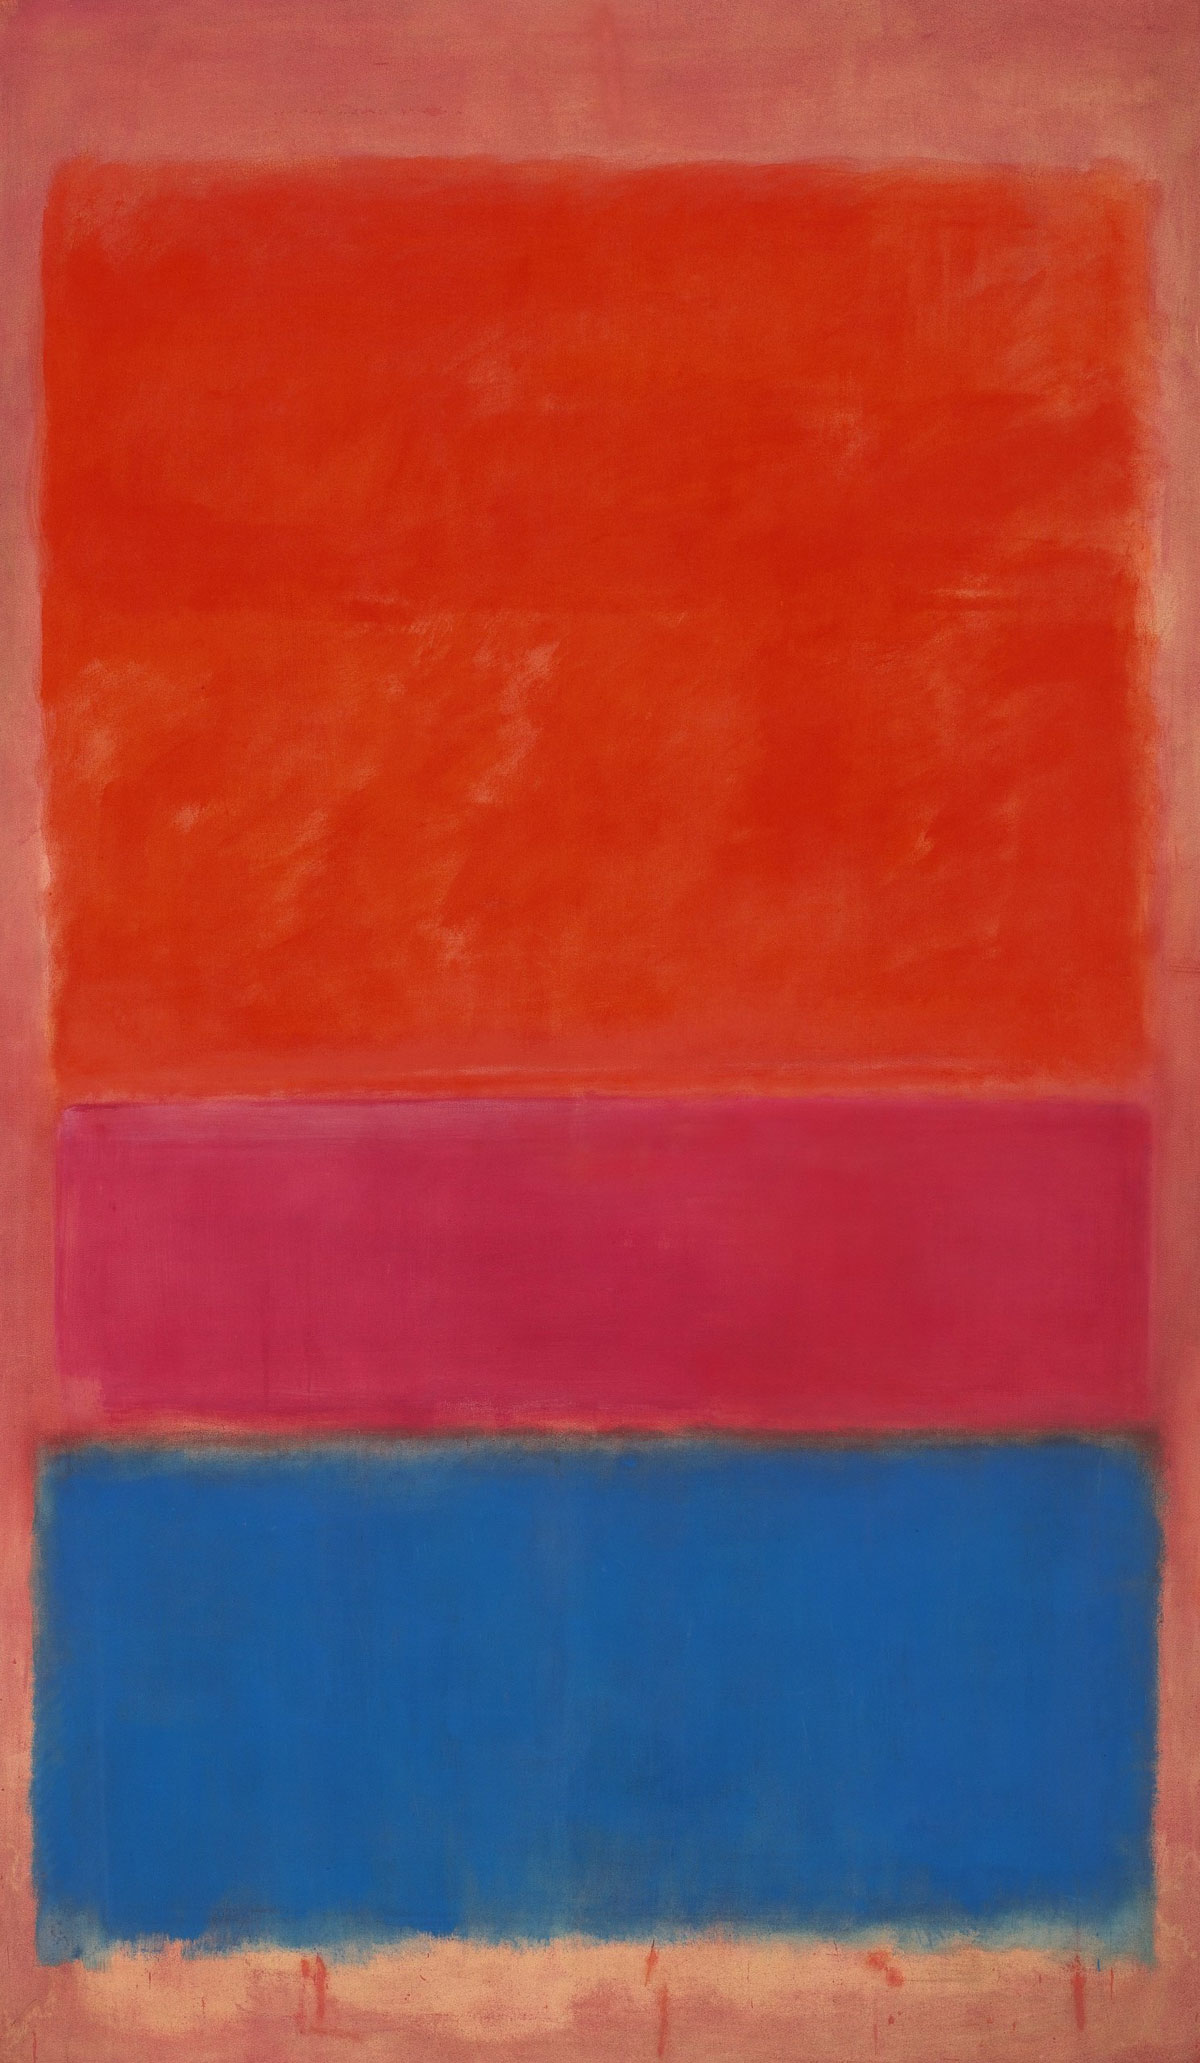 Mark Rothko's 1954 No.1 (Royal Red and Blue)